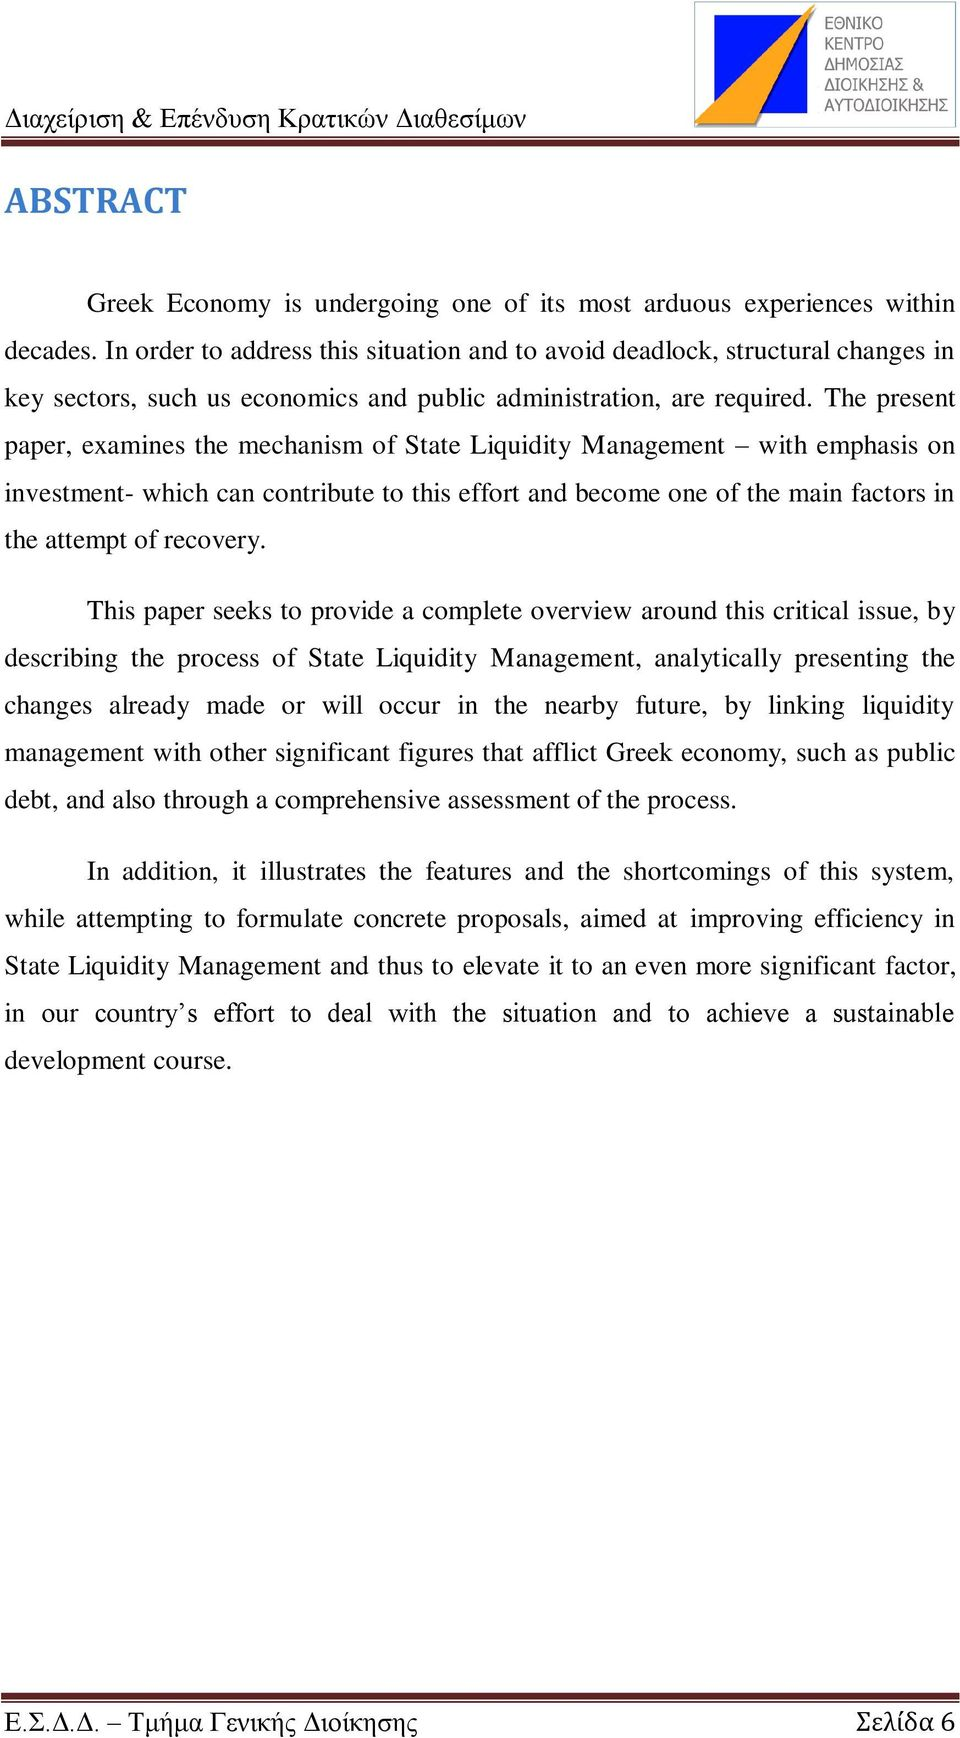 The present paper, examines the mechanism of State Liquidity Management with emphasis on investment- which can contribute to this effort and become one of the main factors in the attempt of recovery.